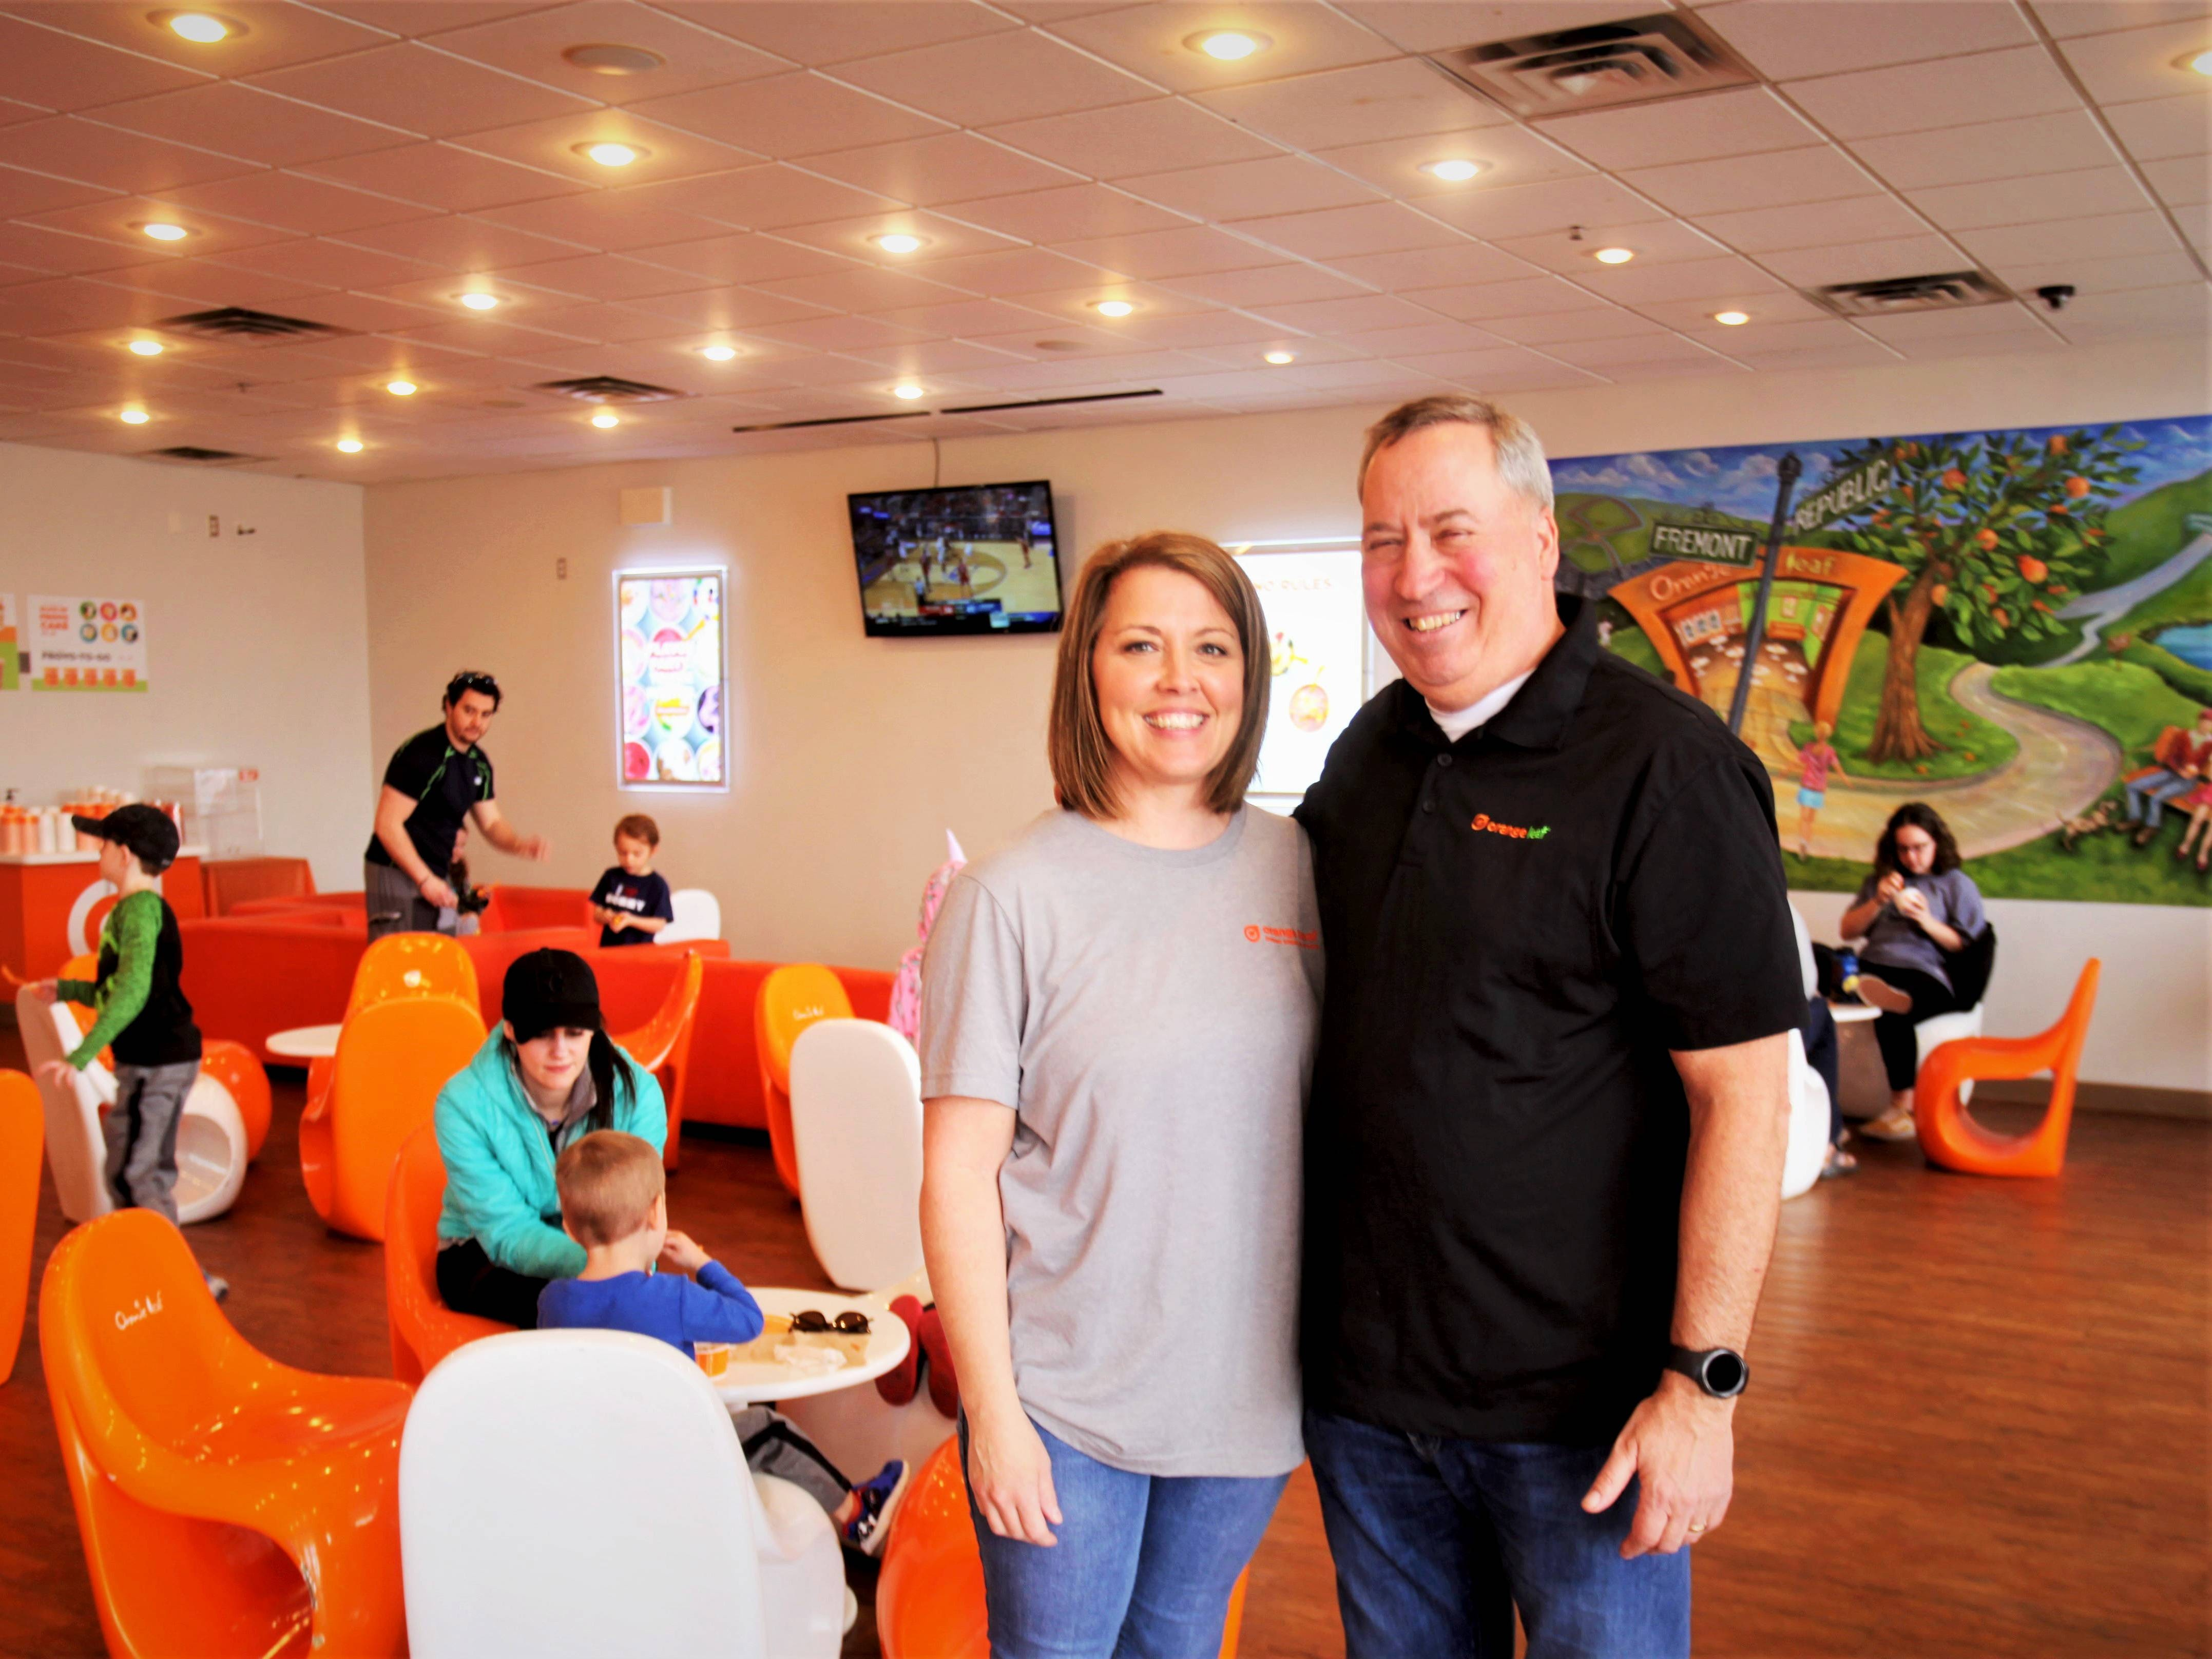 Orange Leaf franchise owners Amber and Jim Troye reopened the store at 1368 E. Republic Road in Springfield on March 14, 2019.